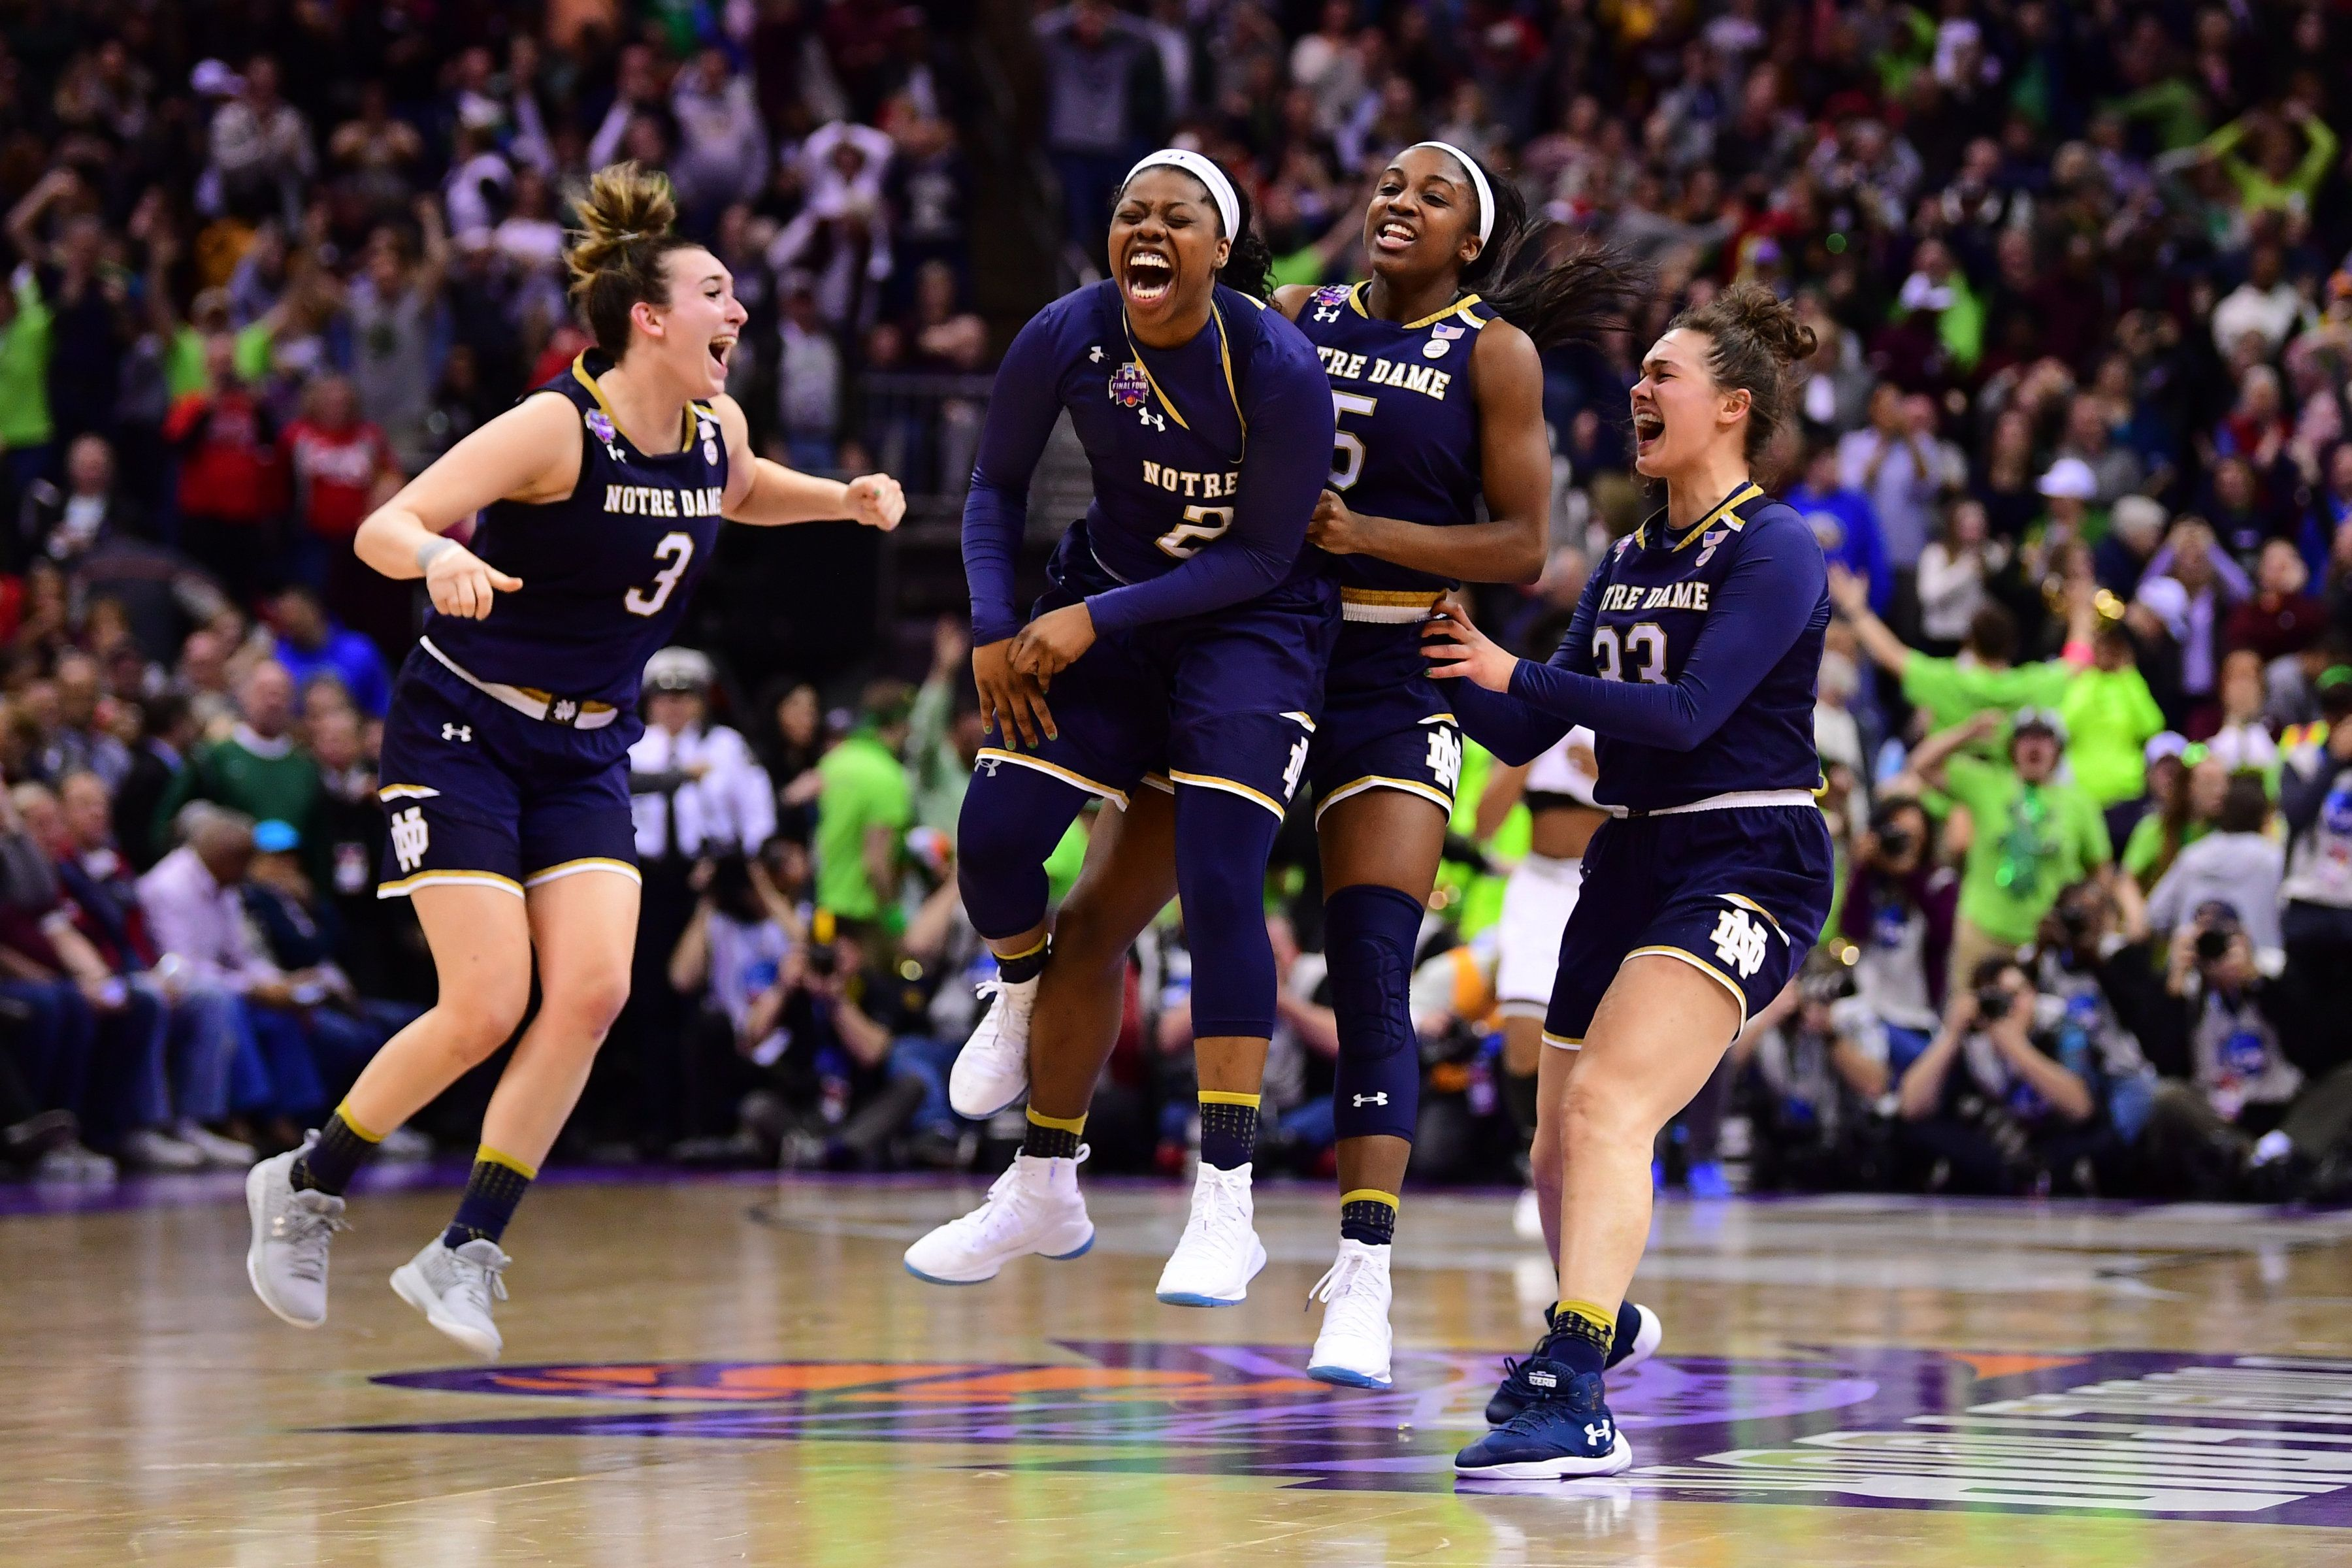 Notre Dame wins NCAA women's championship on last-second shot